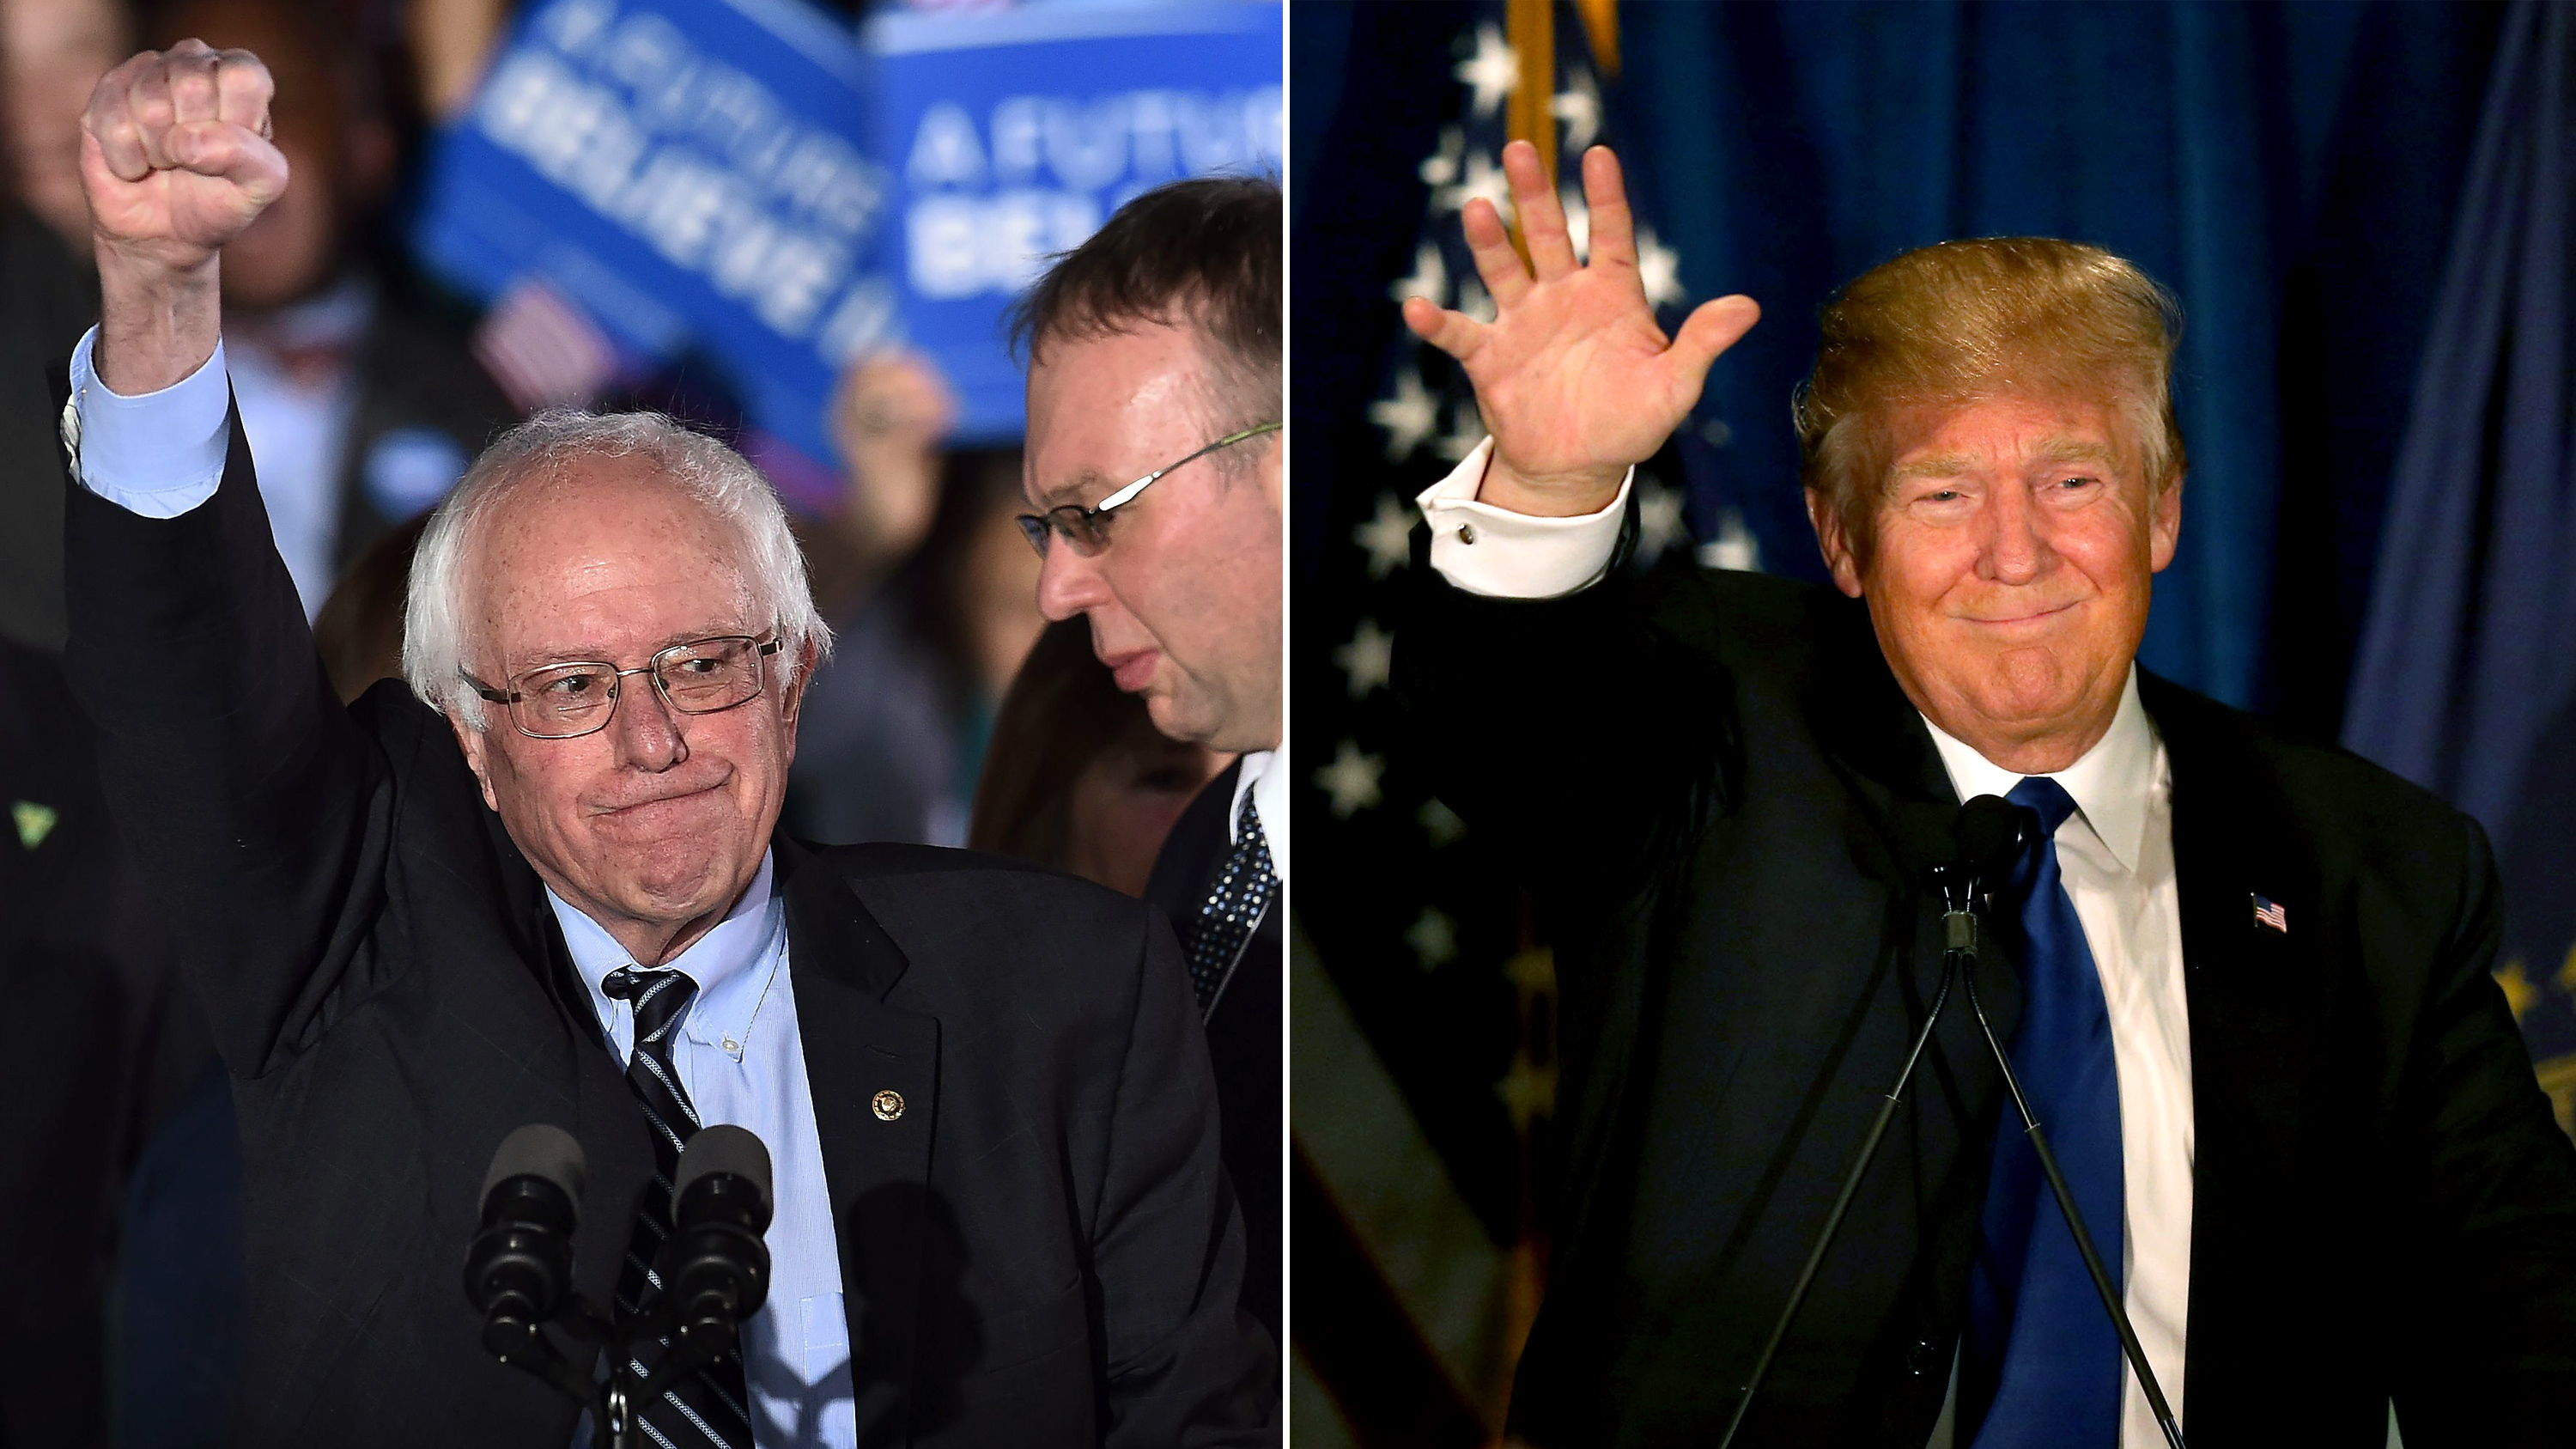 Trump And Sanders Win Big, Kasich Second